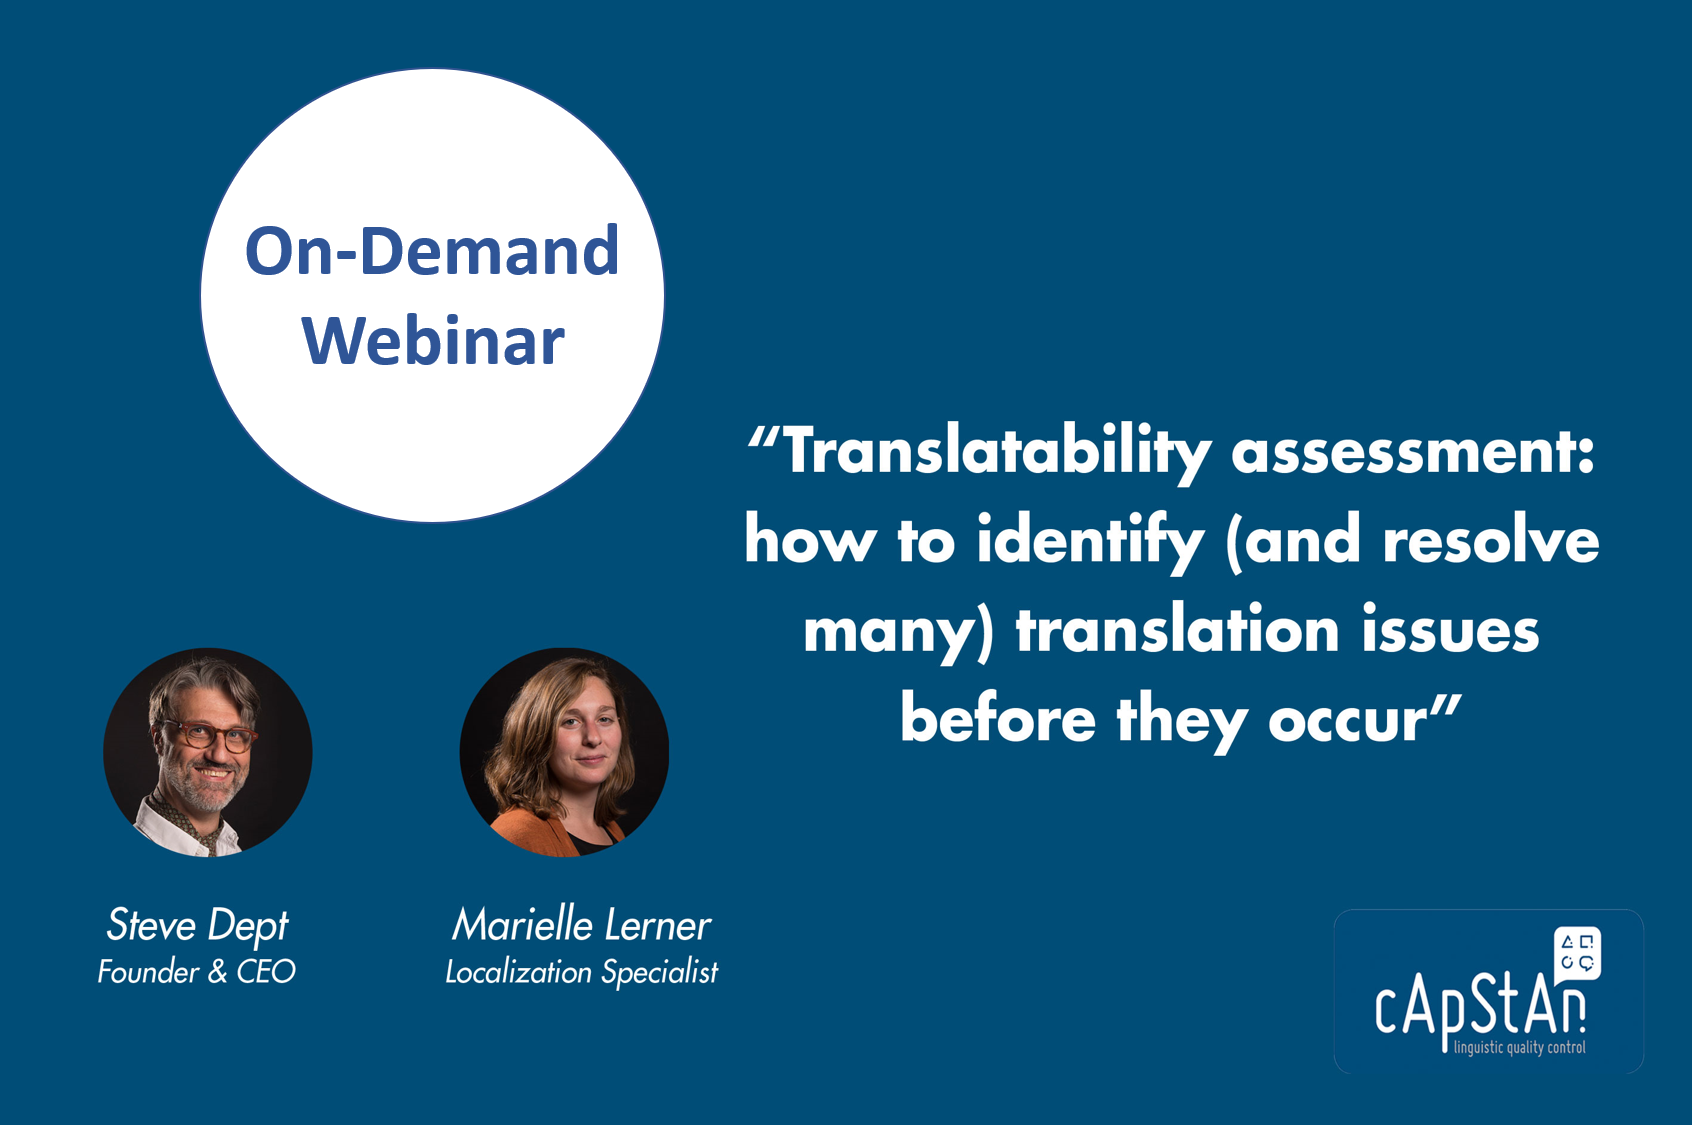 Translatability Assessment: How to Identify (and Resolve many) Translation Issues before They Occur